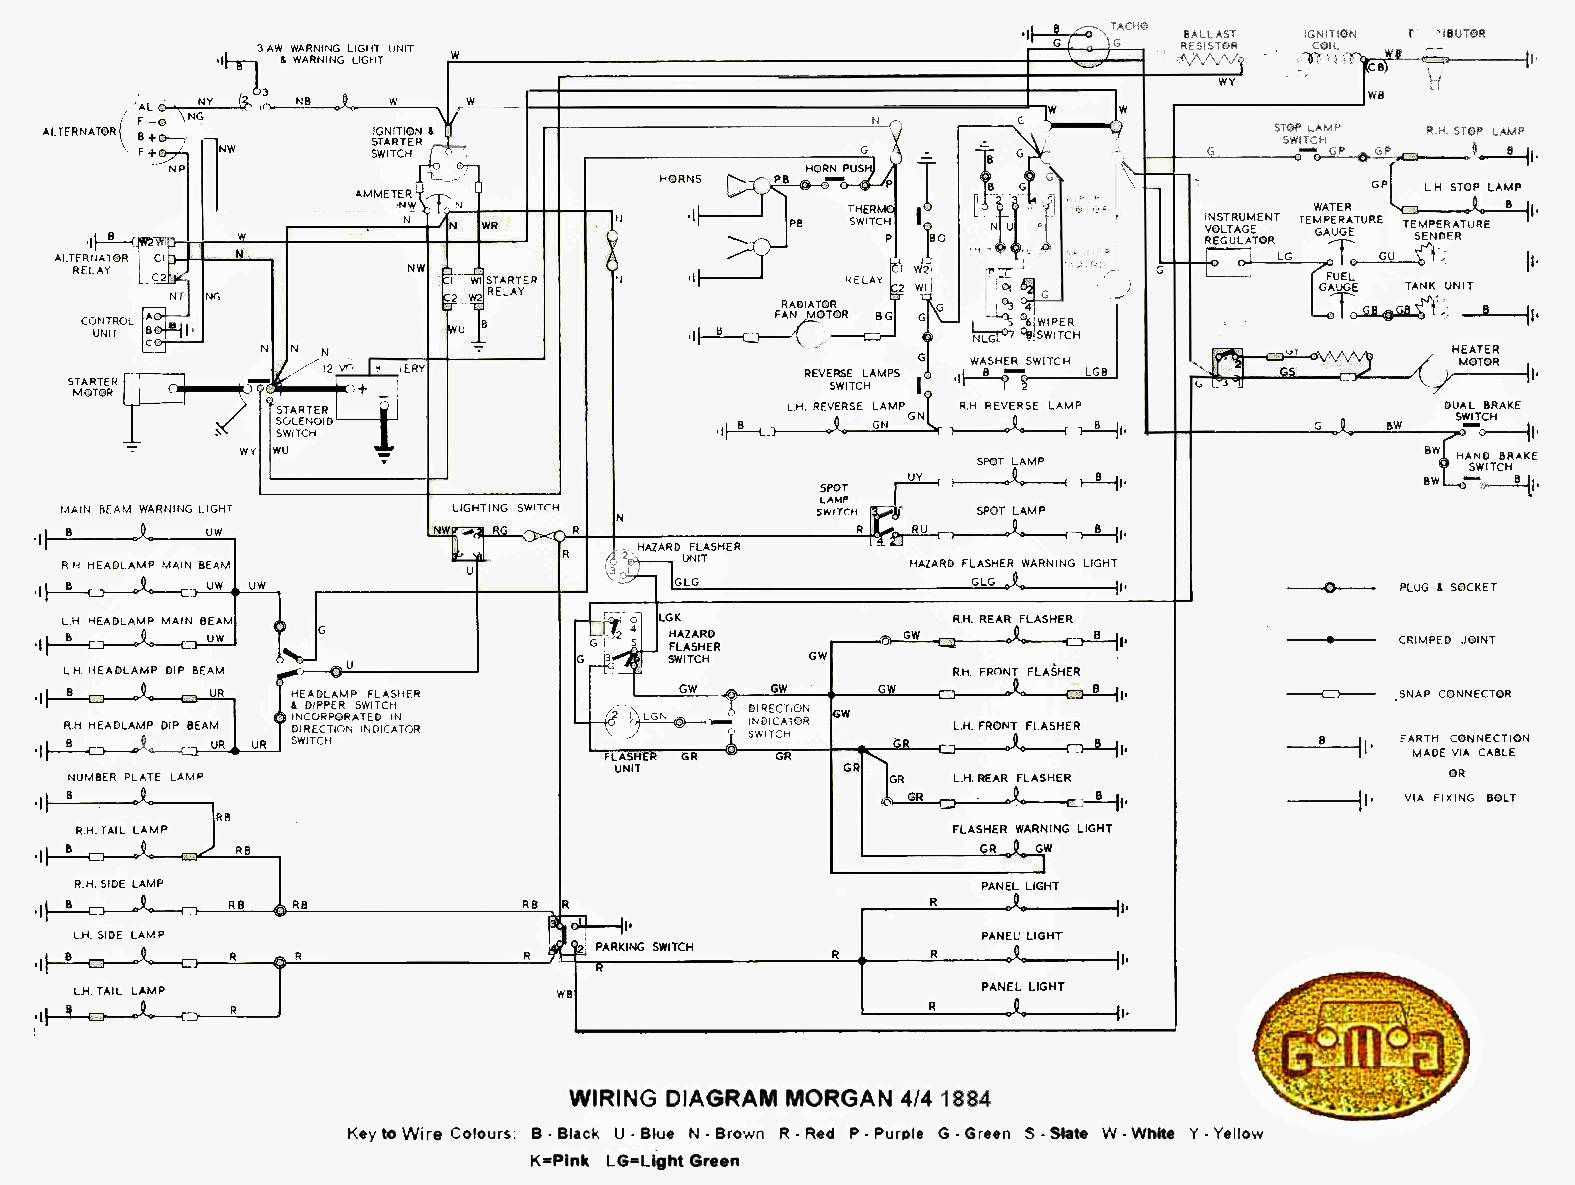 Morgan Electrical Pinnacle Wiring Diagrams 1984